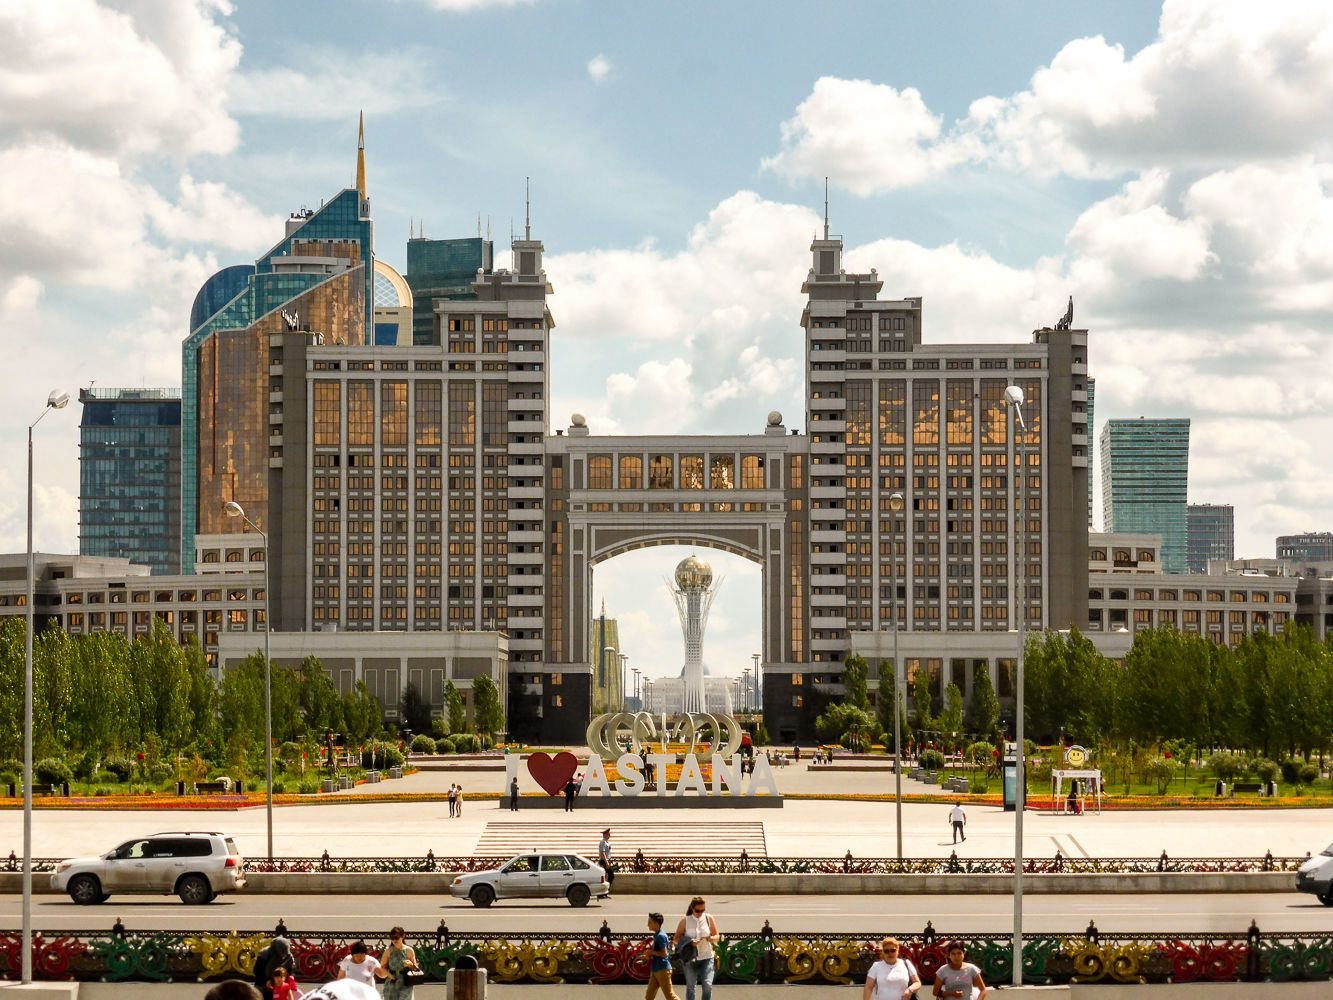 astana kazakhstan central asia top things to see